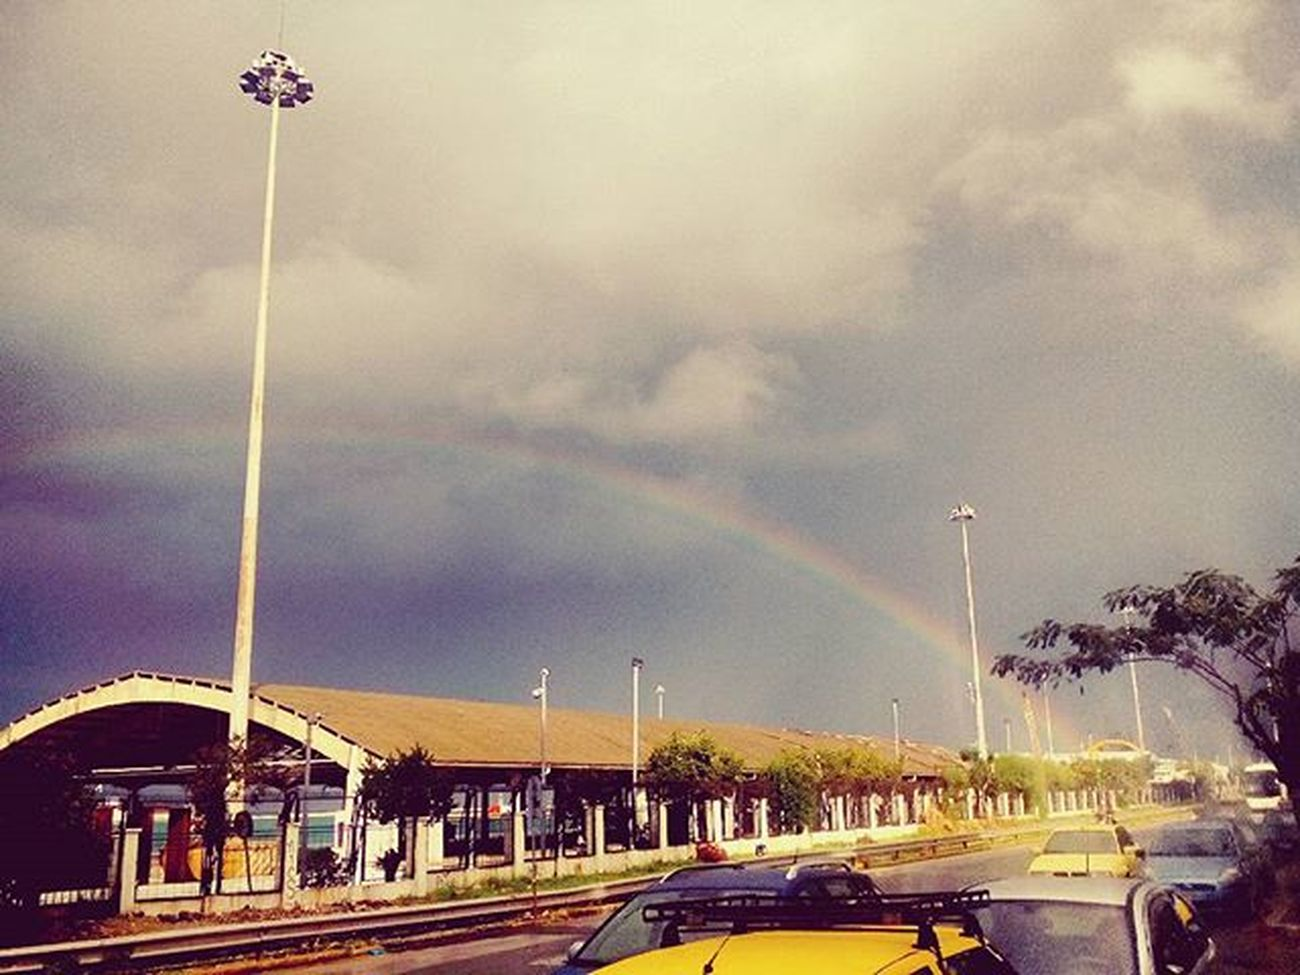 One of the most astonishing Rainbows I have ever seen RainyDay Love Feeling So Vintage Wind Rain Instapatra Insta_patras Happymonday  Monday Lovemondays